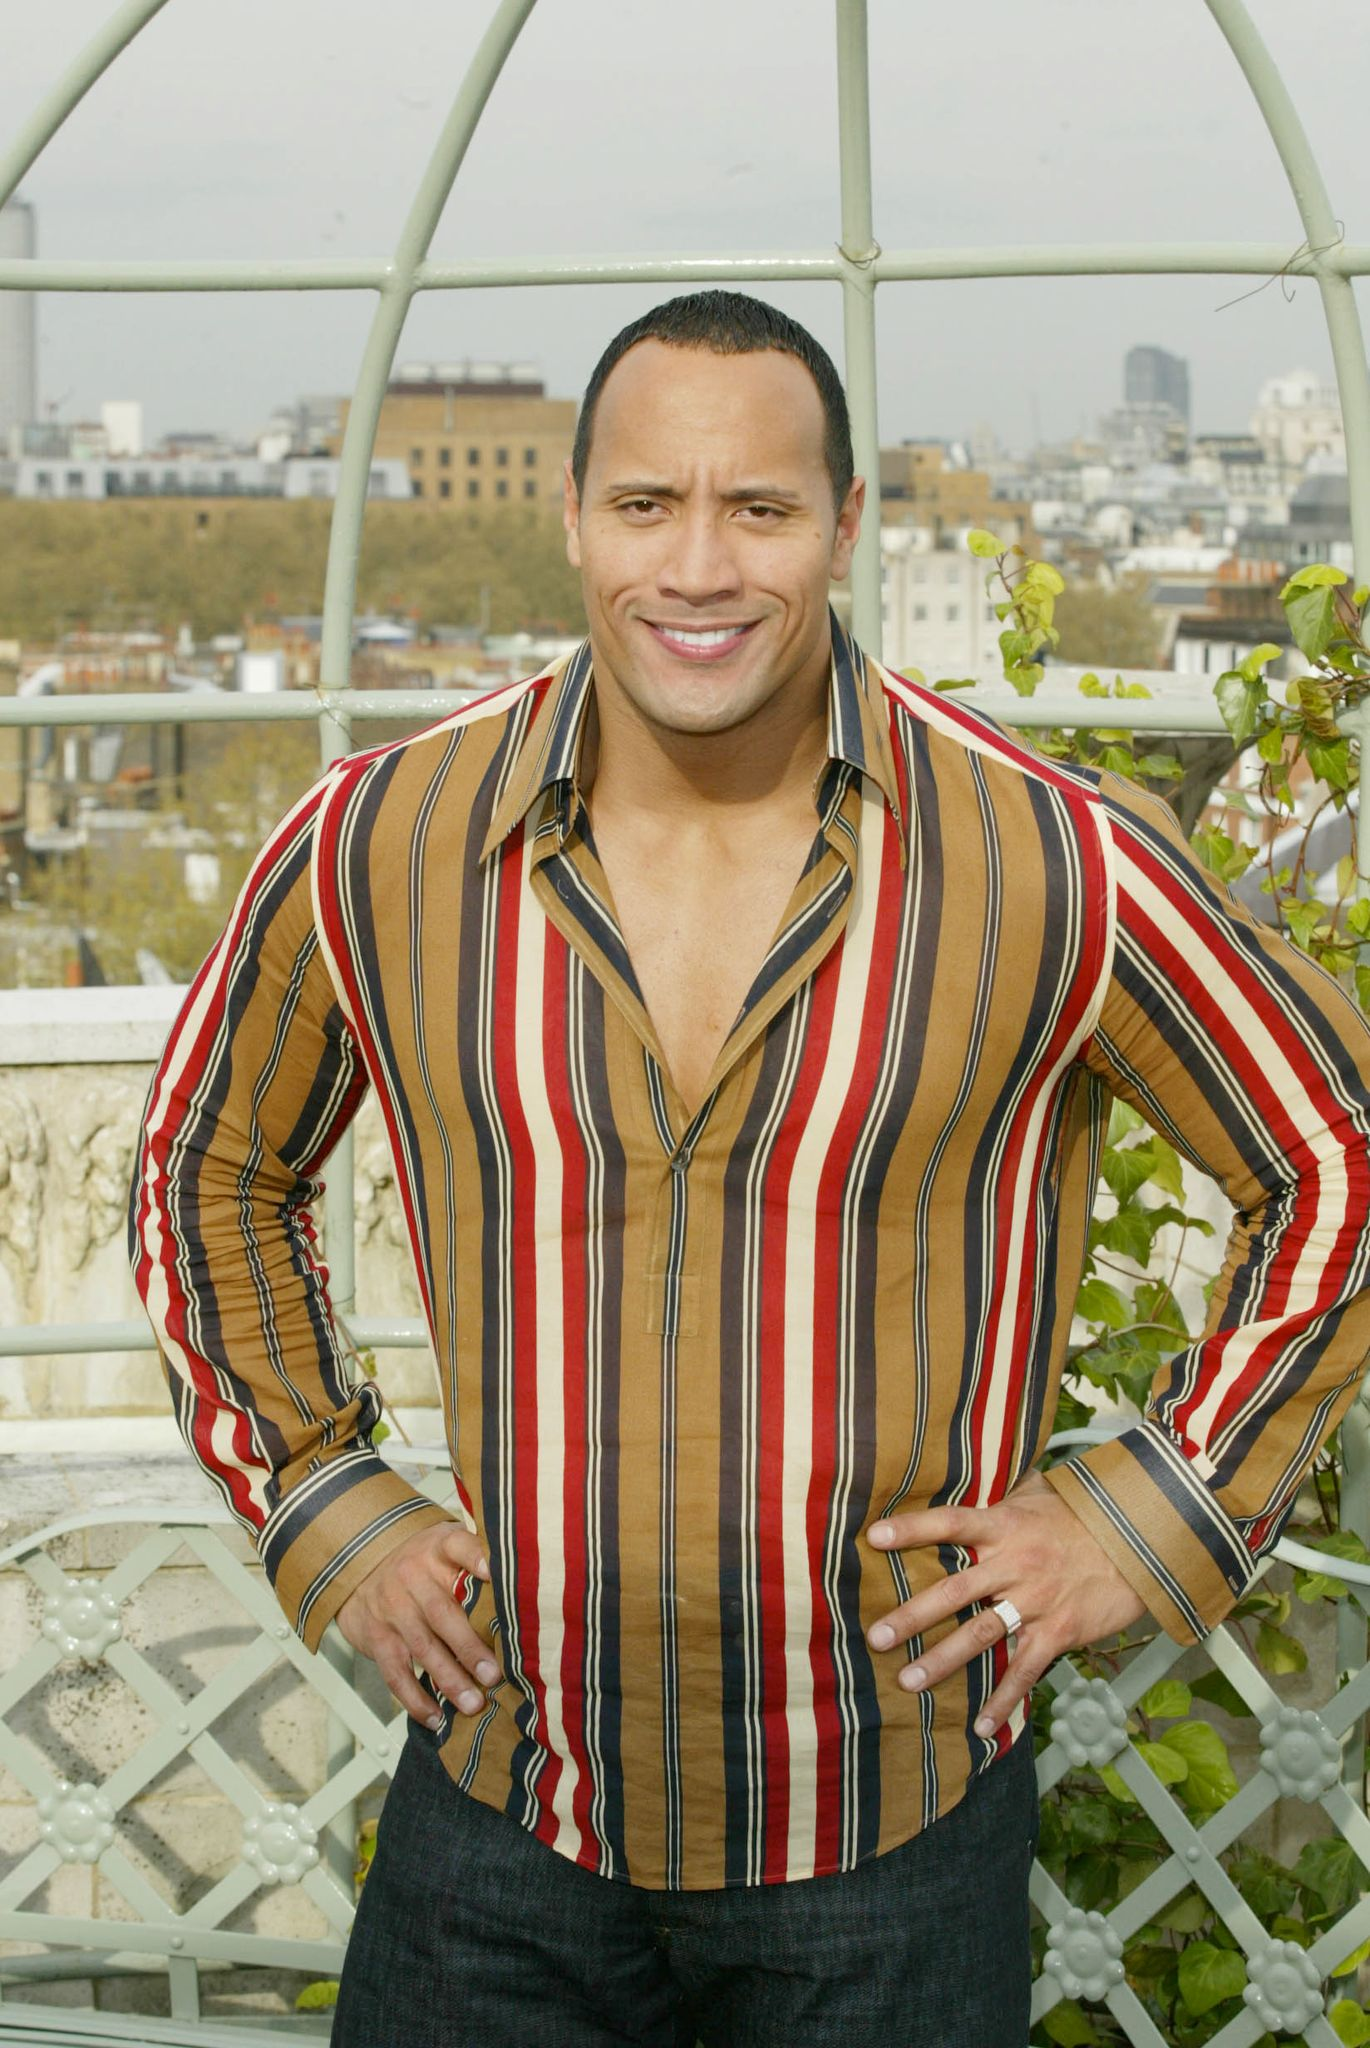 Dwayne Johnson at the Dorchester Hotel, London on April 22, 2002. | Photo: Getty Images